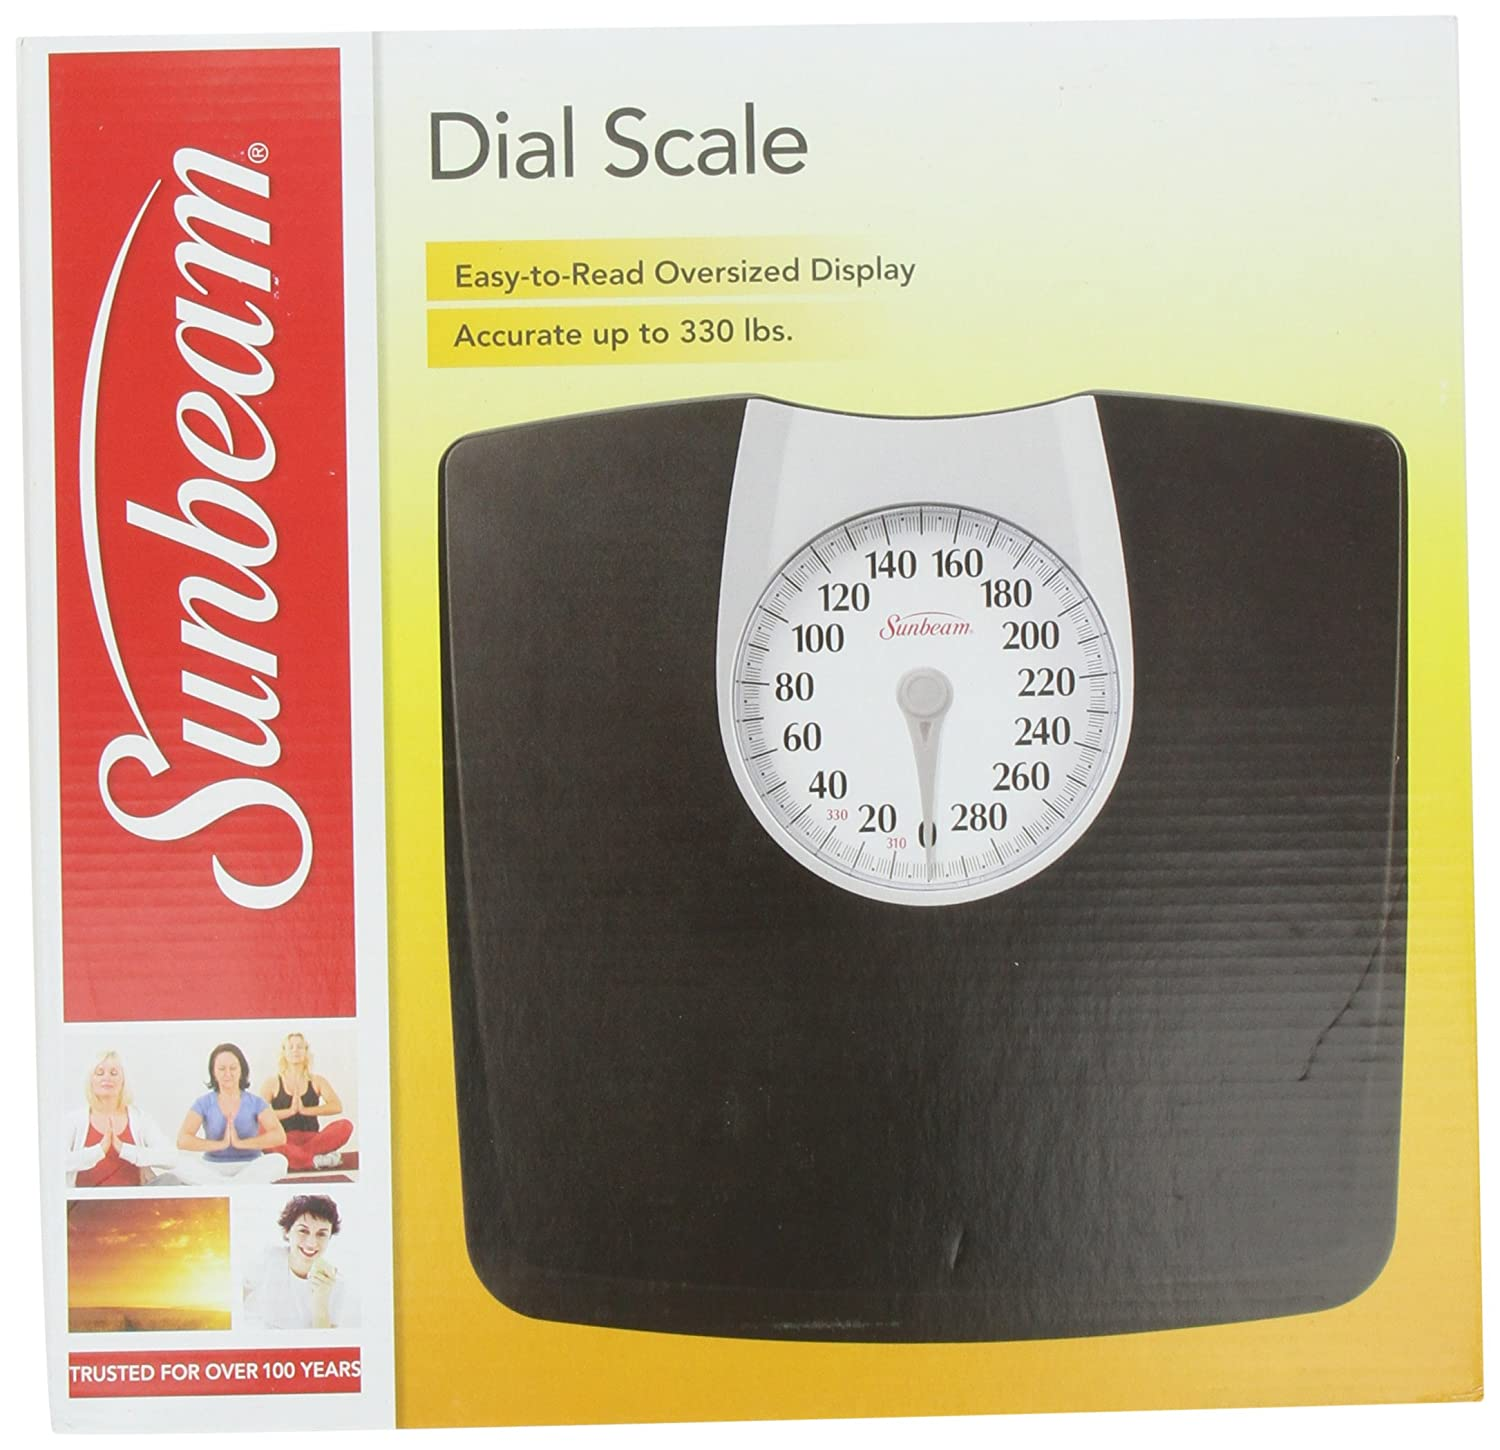 Amazoncom Sunbeam SAB Full View Dial Scale Health - Digital vs analog bathroom scale